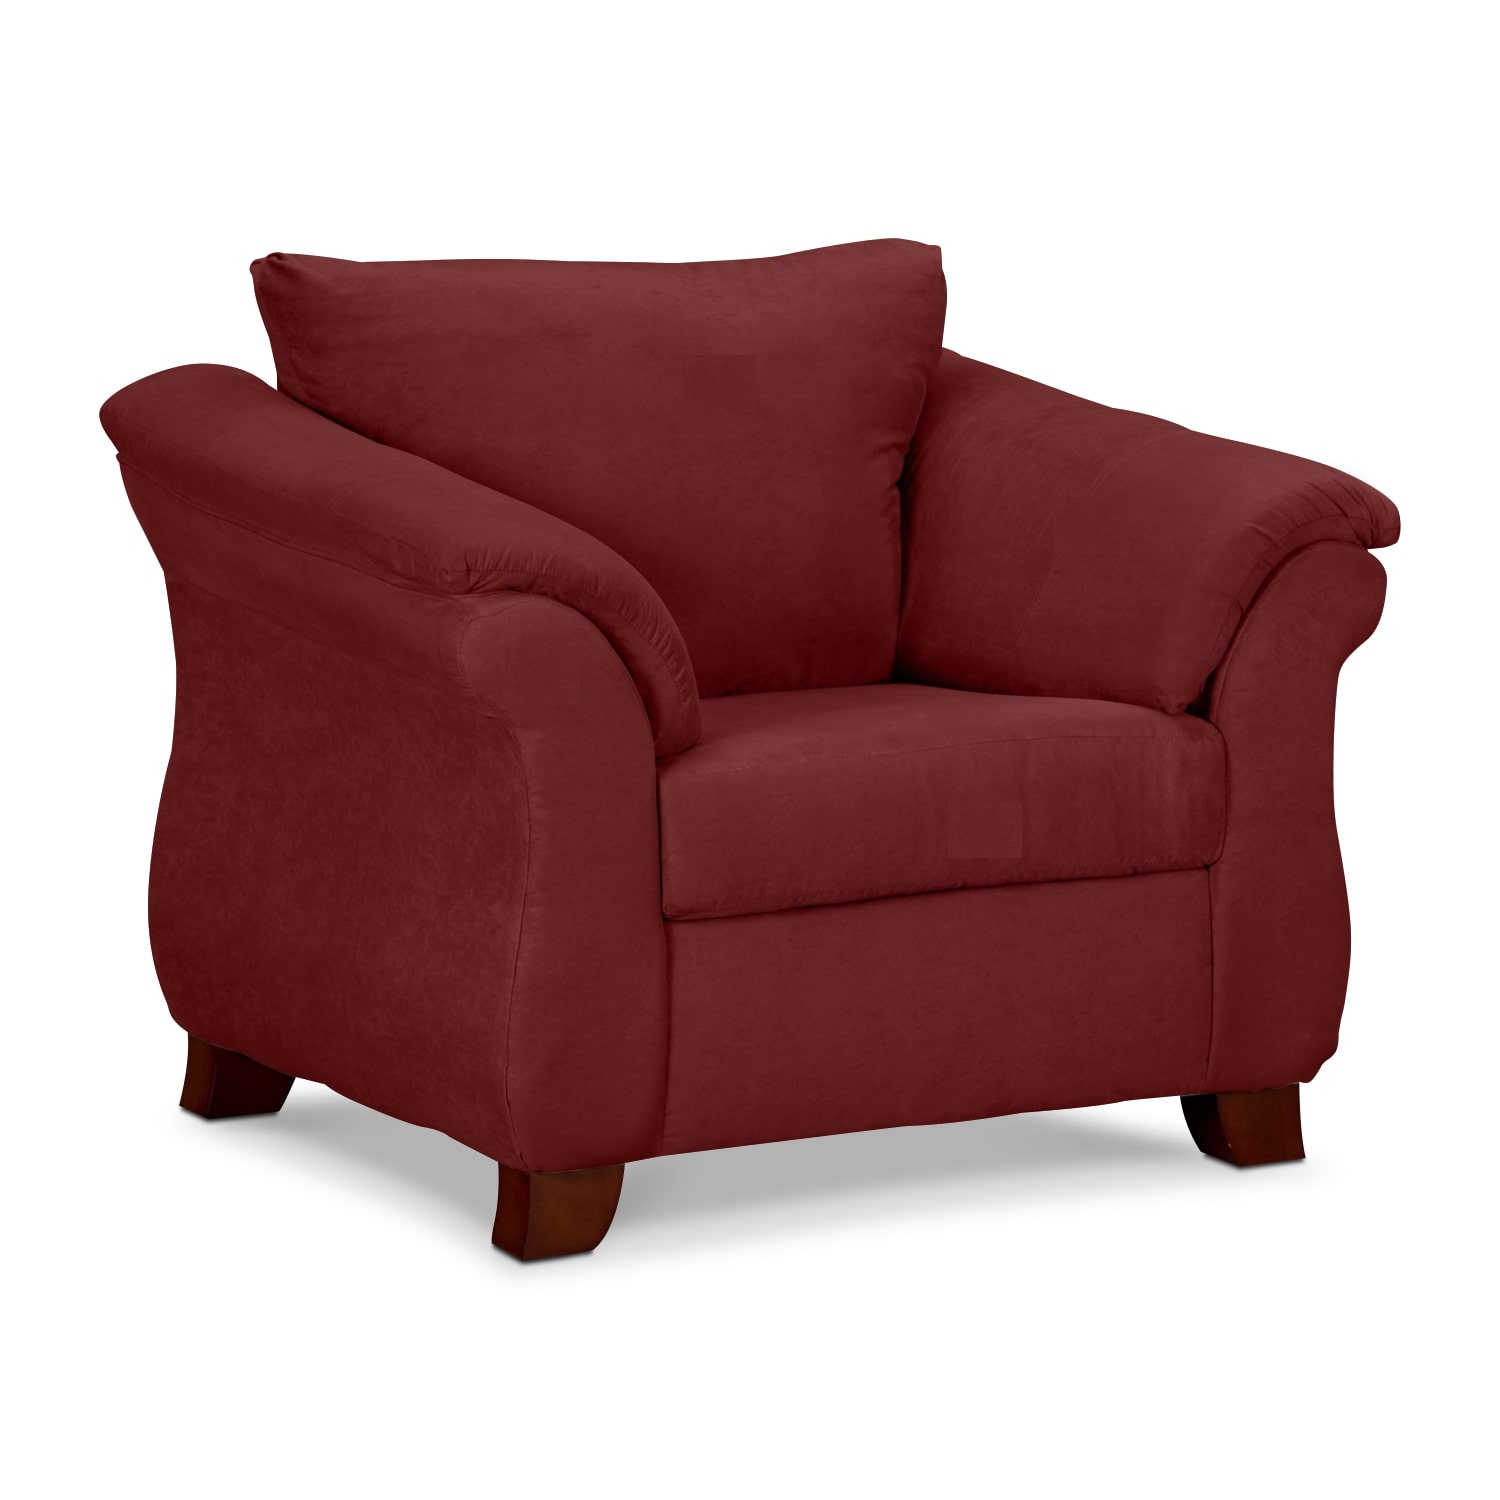 Living Room Furniture - Perry Red Chair